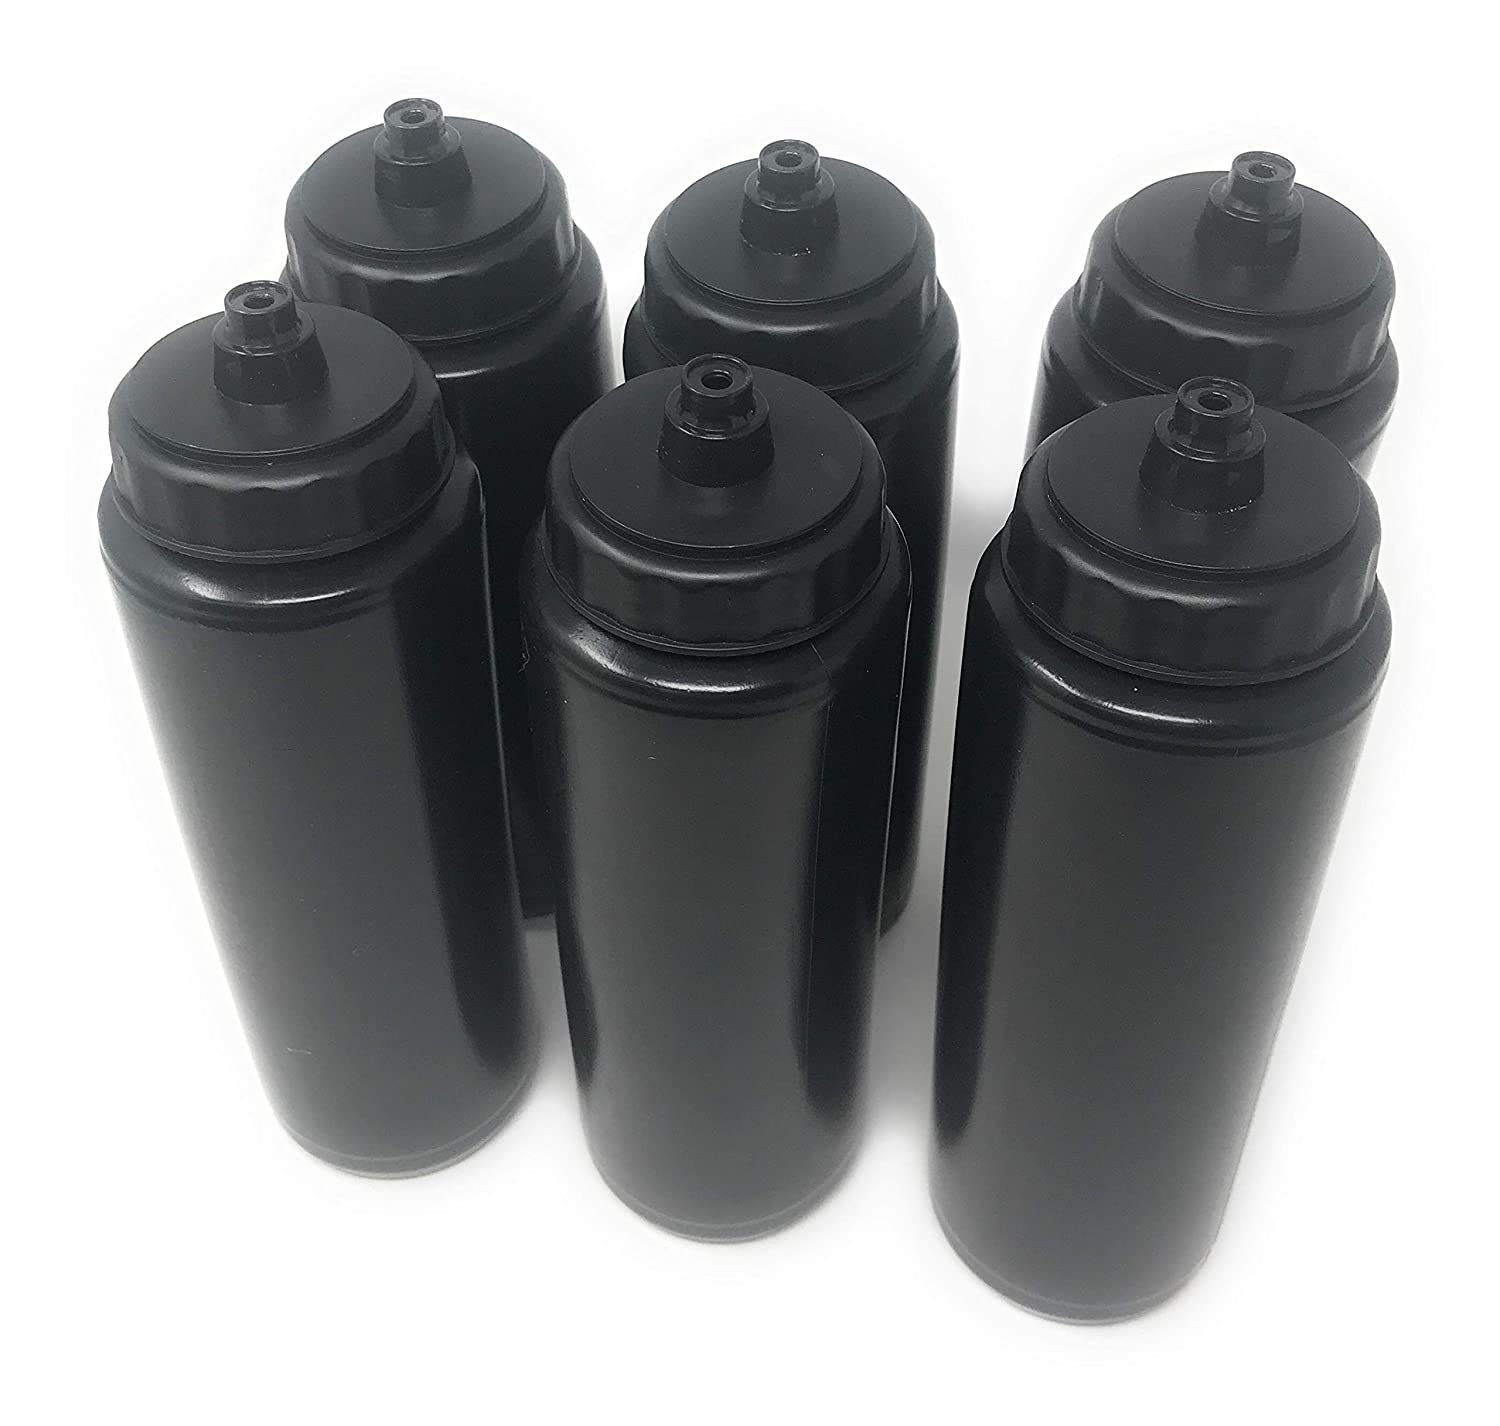 Hockey Softball Volleyball Volleyball Football Soccer Sea View Treasures 6 x 24oz Plastic Sports Squeeze Water Bottle SVT Black Baseball